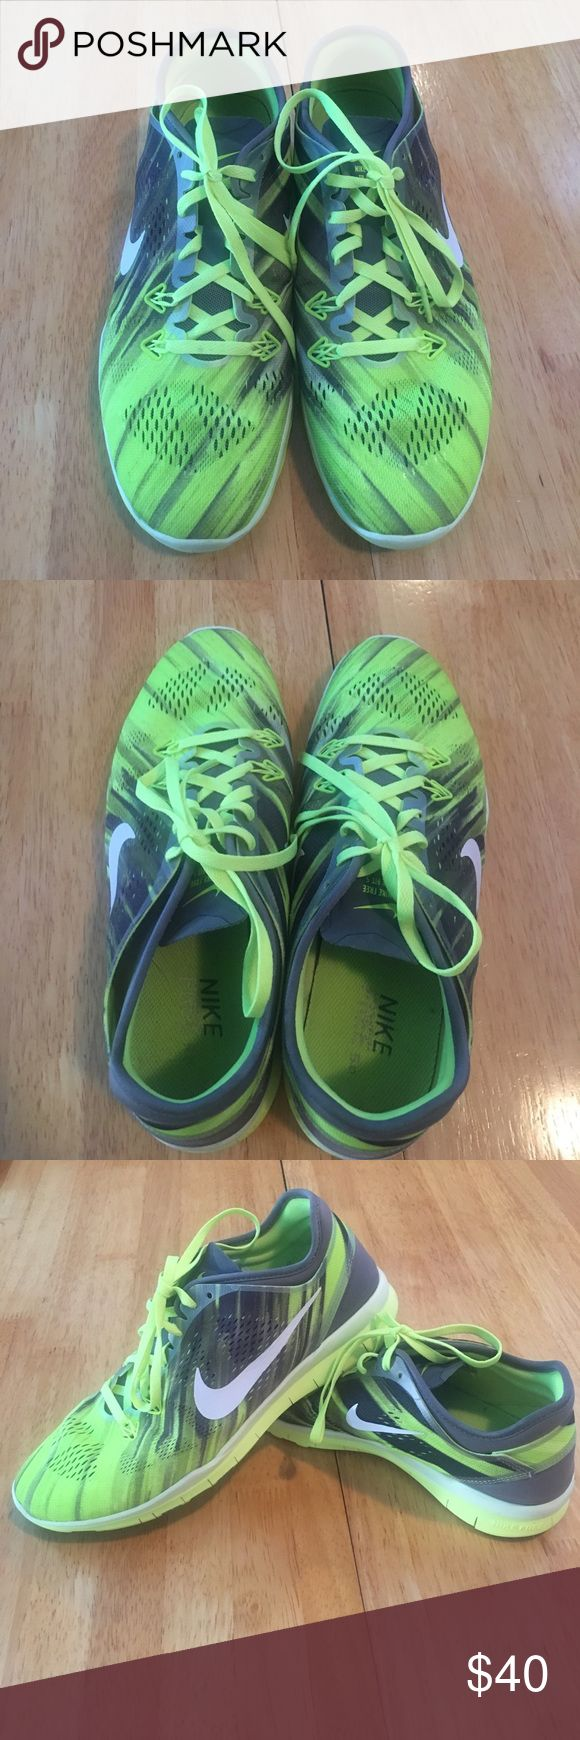 Nike Free TR FIT 5.0 Neon yellow and grey Nike cross trainers. Nike Shoes Sneakers